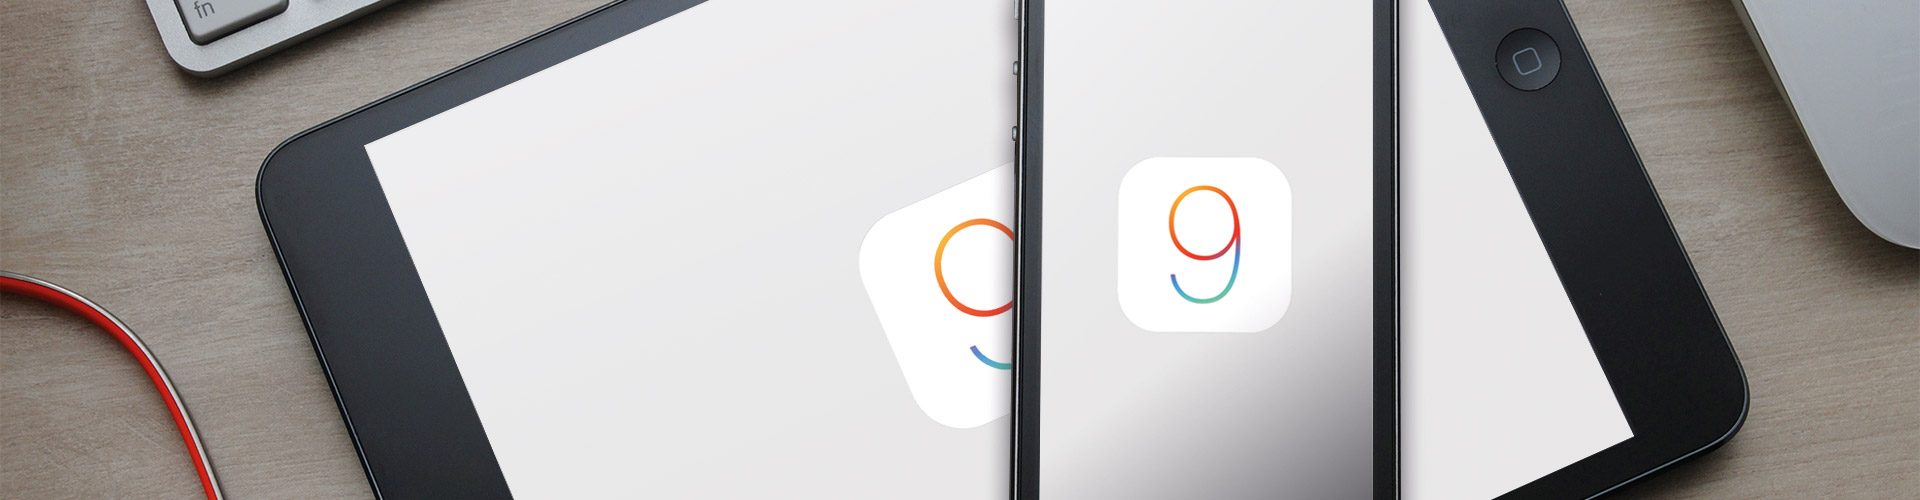 What Does iOS 9 Mean for Publishers?